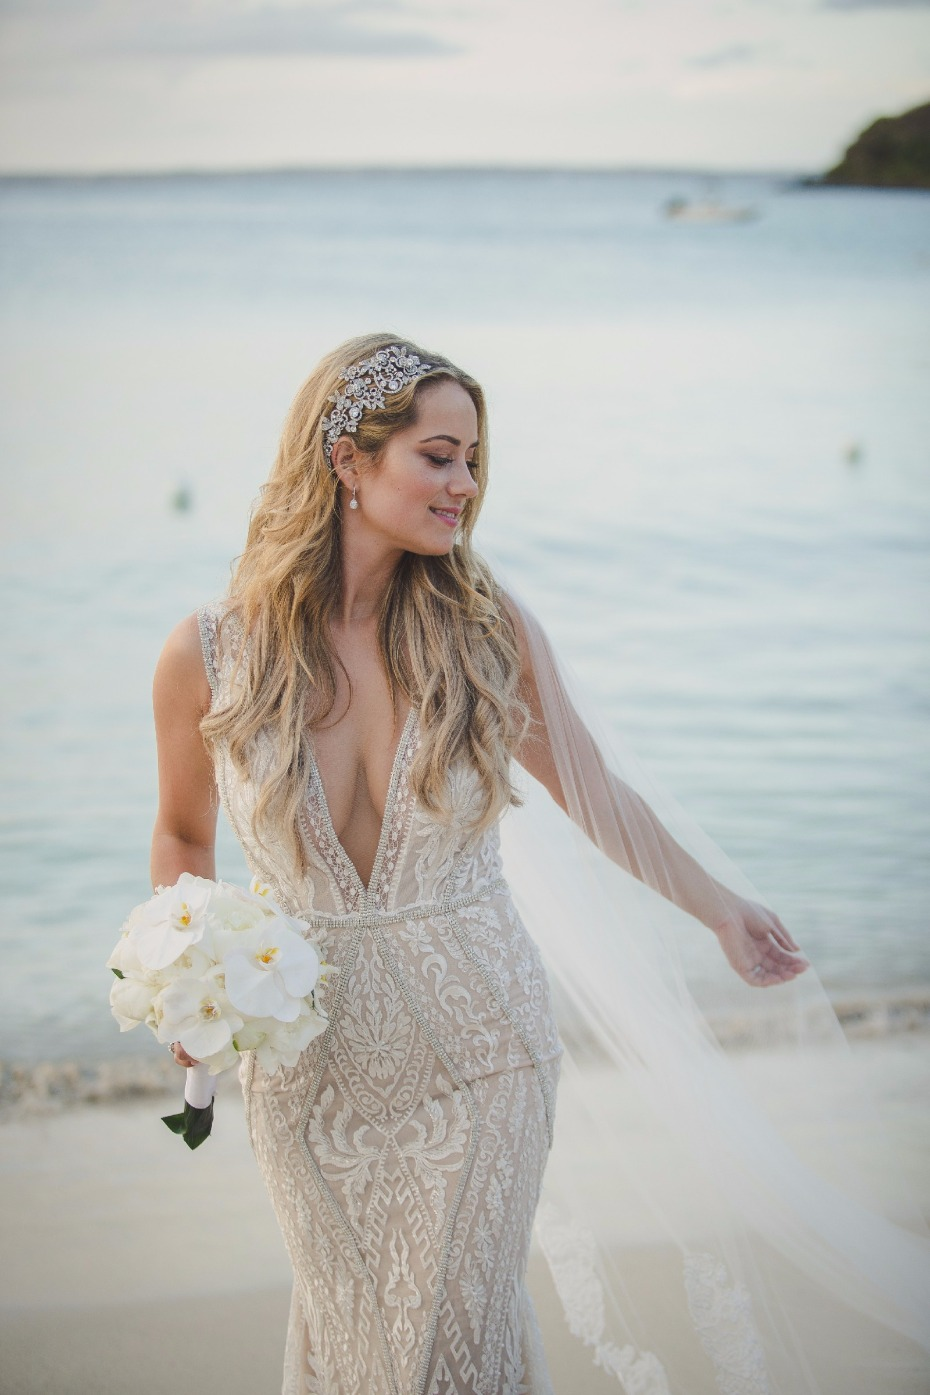 Find this pre-loved Galia Lahav gown on Still White